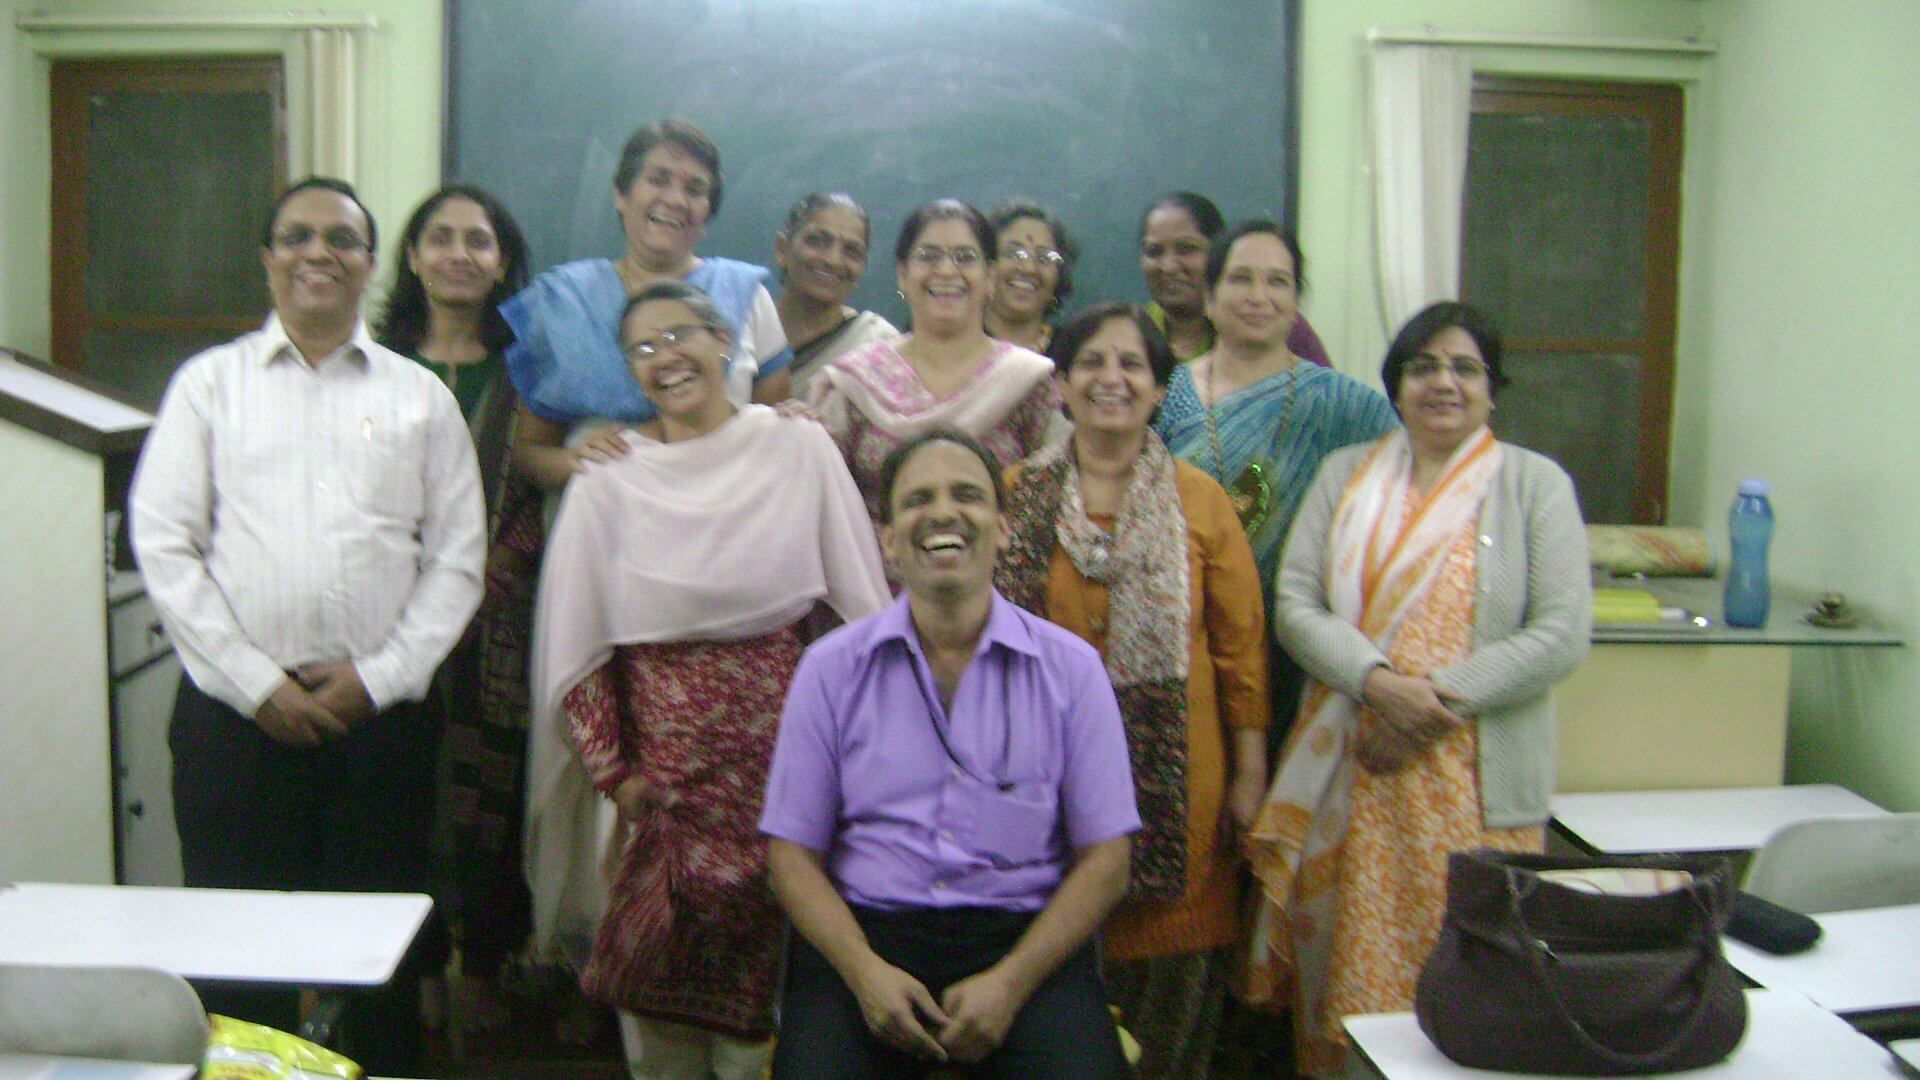 madhav-joshi-class-room-health-training